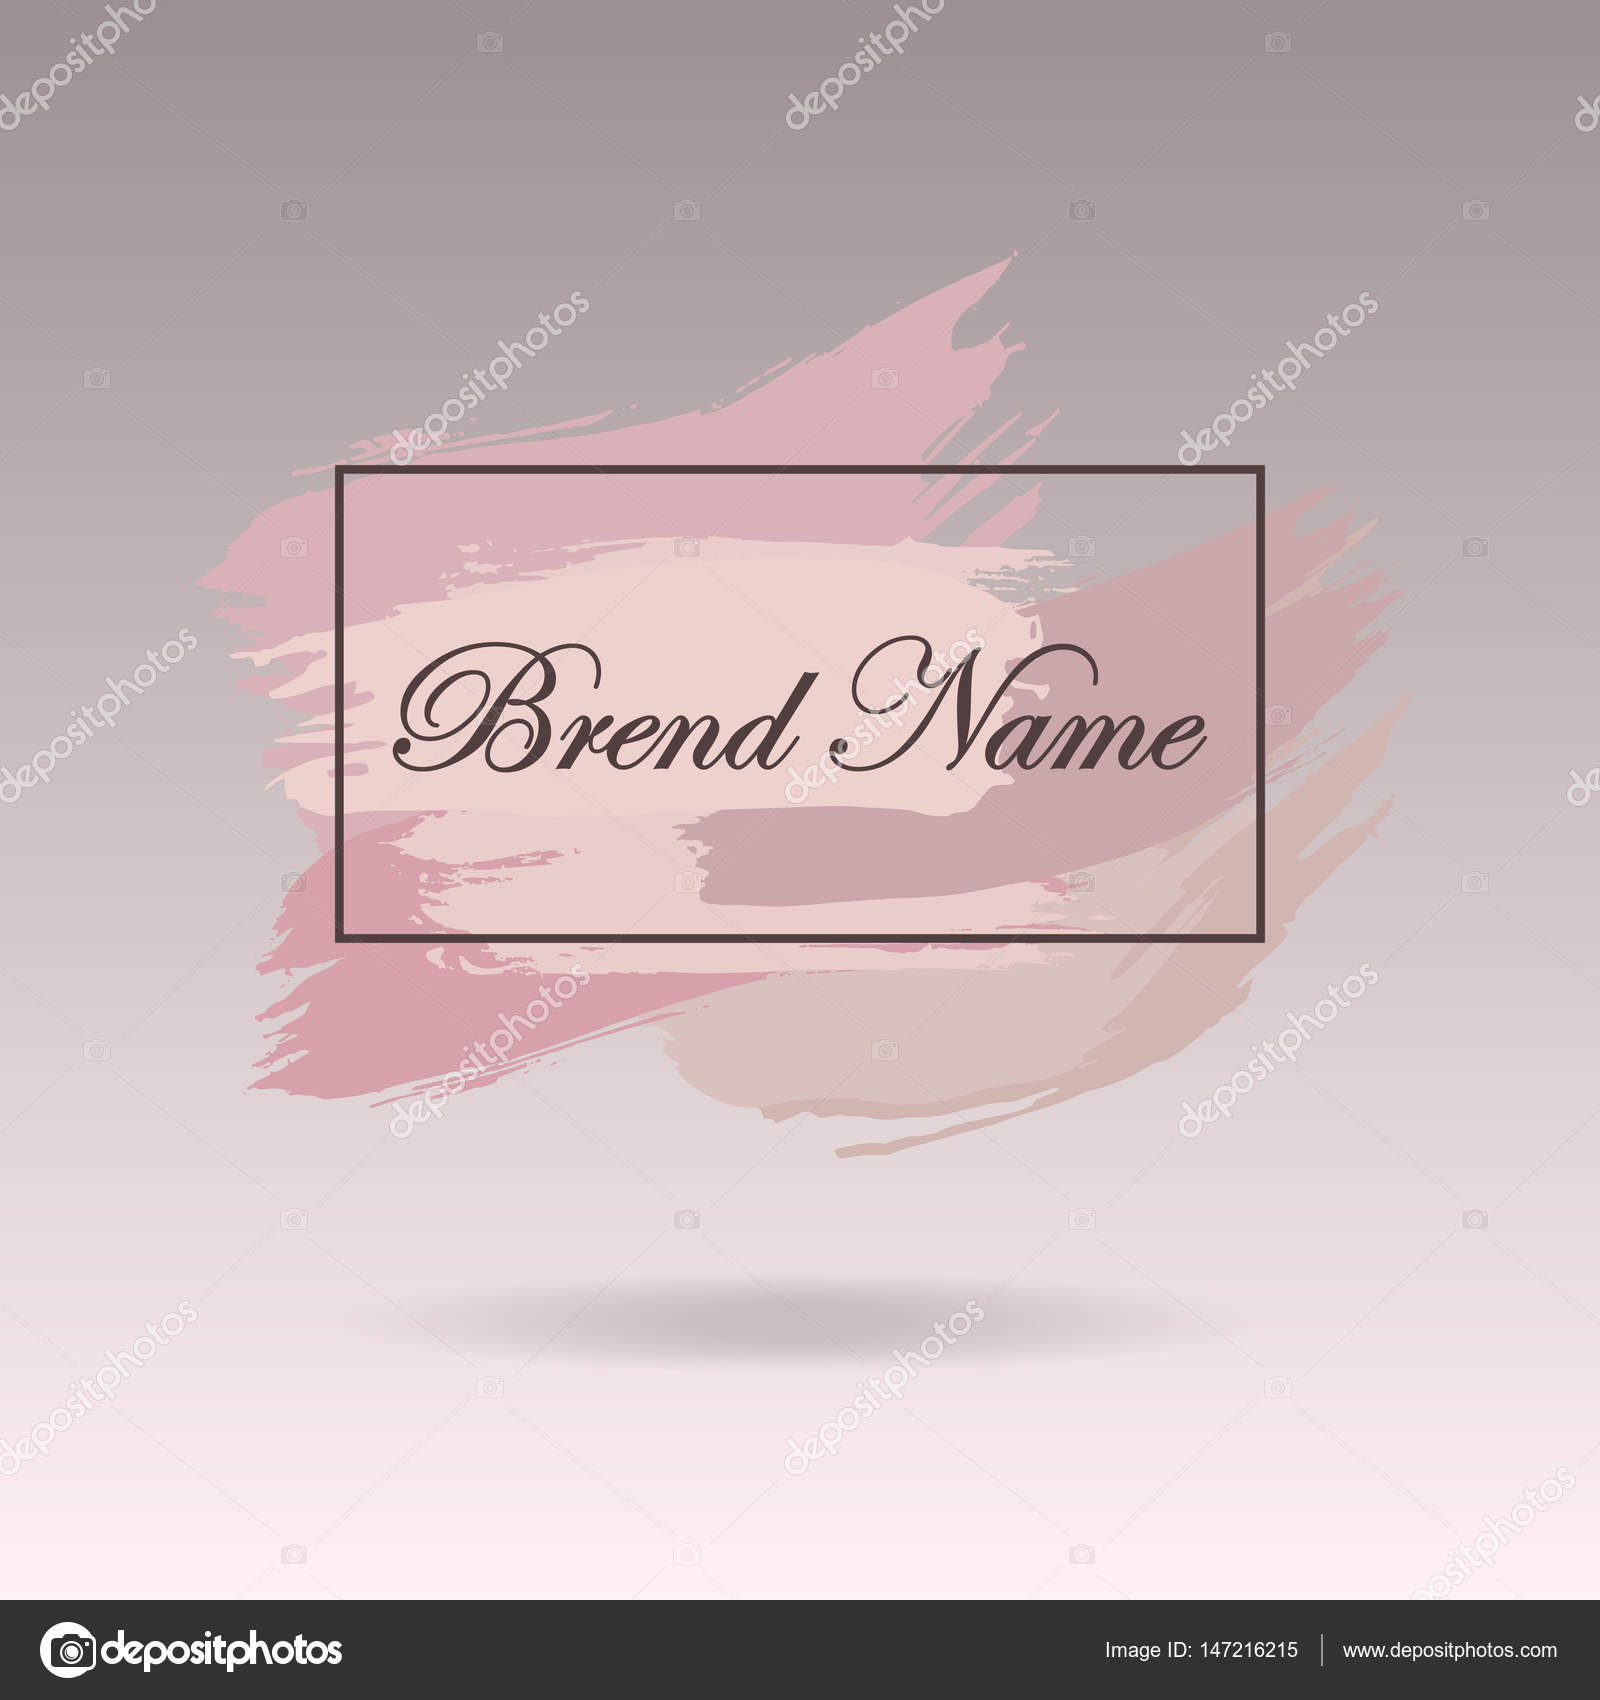 Pre-made Logo design, banner and watermark  Artistic brushes design